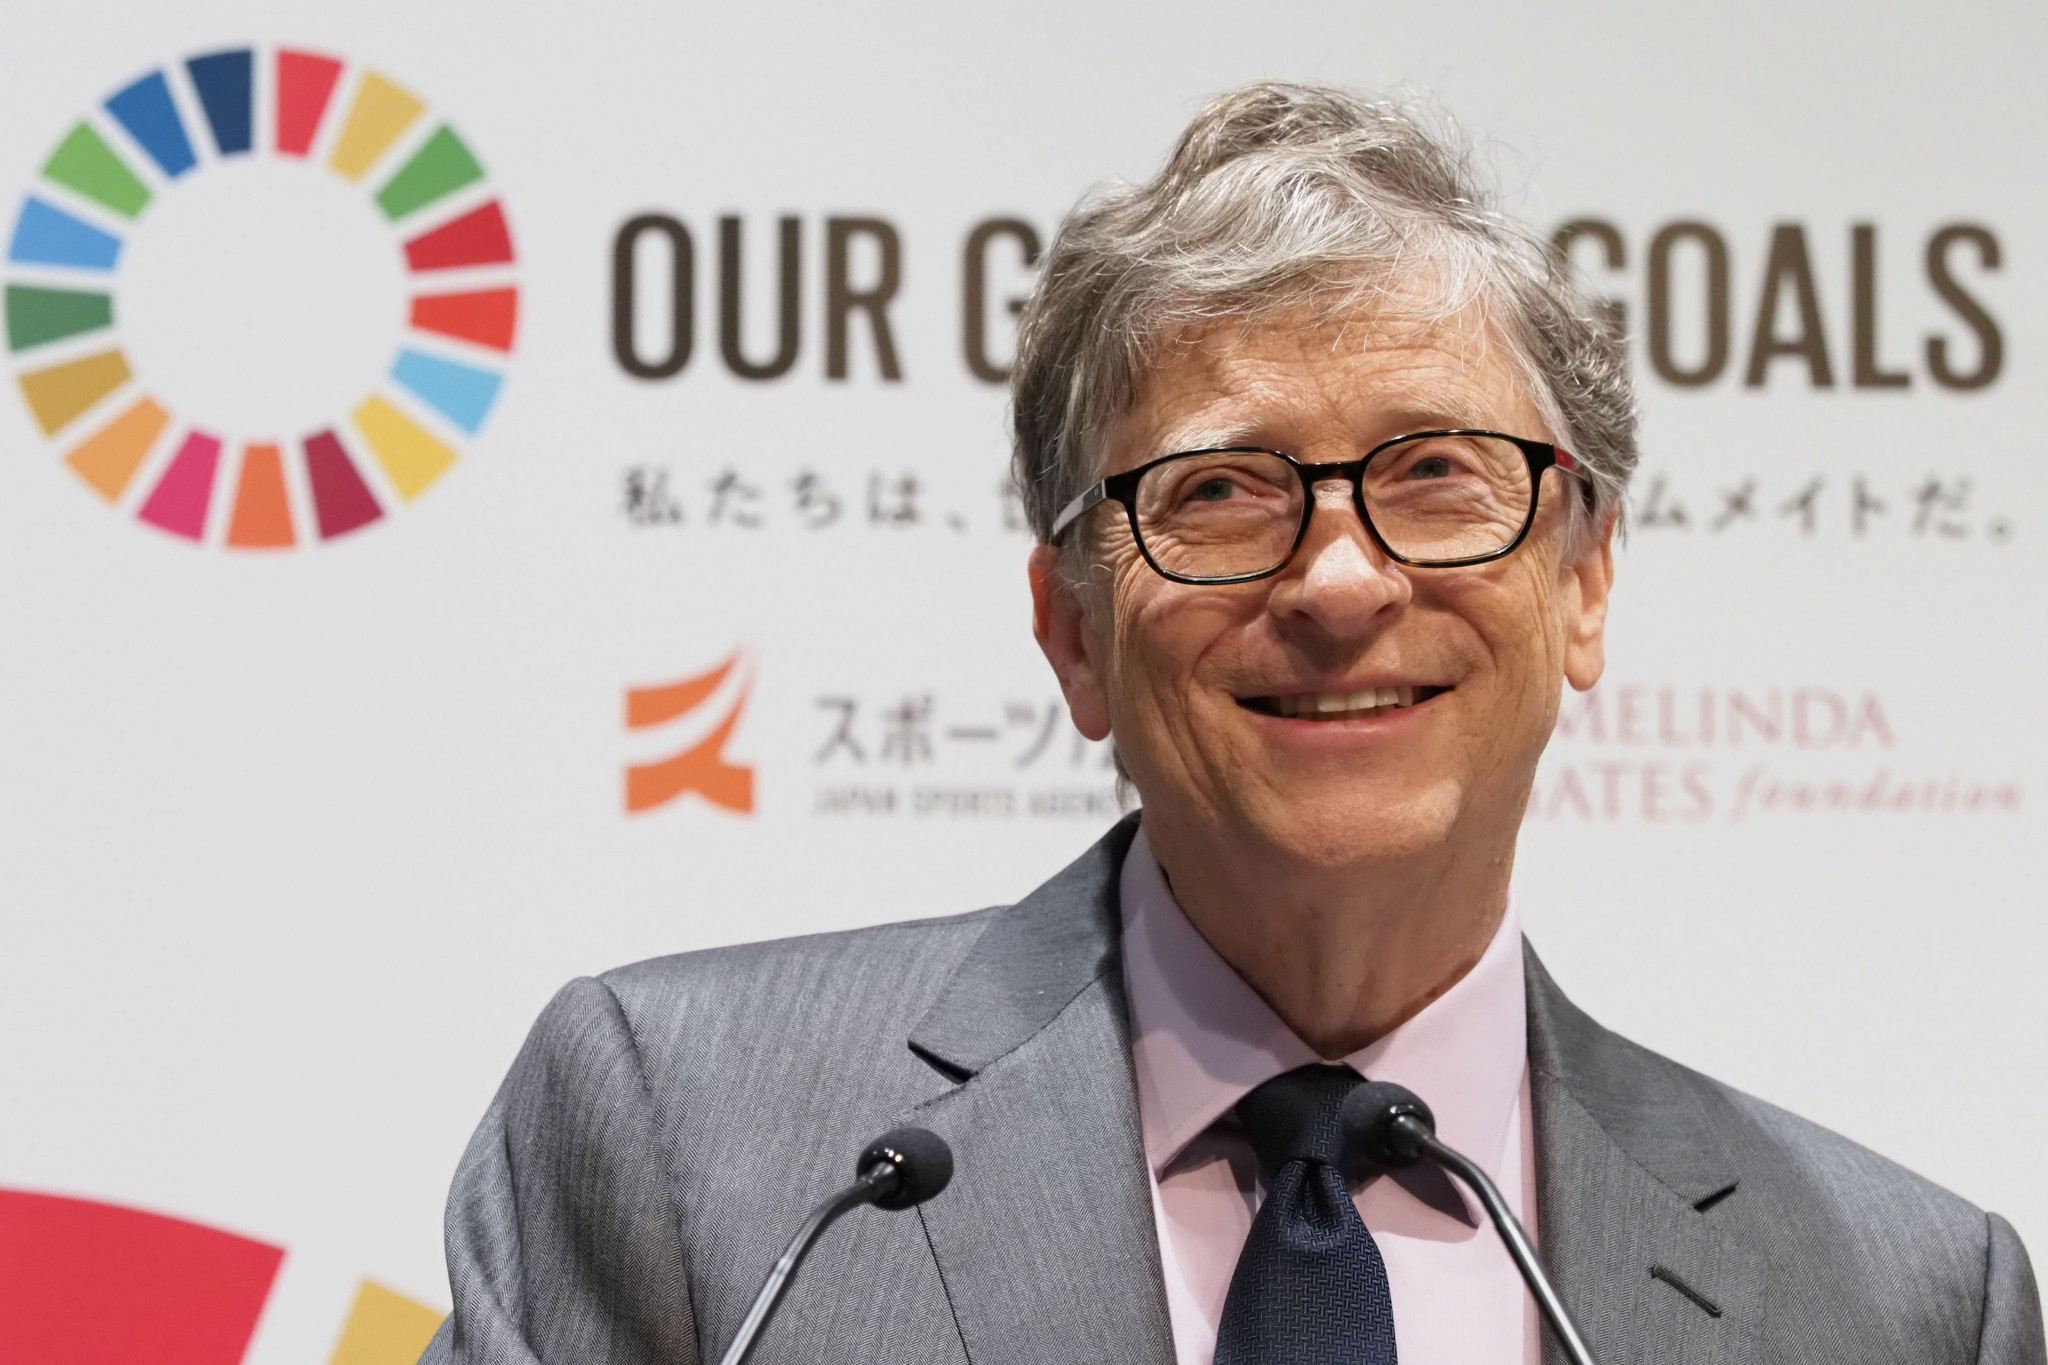 Bill Gates has signed a deal with Tokyo 2020 ©Getty Images